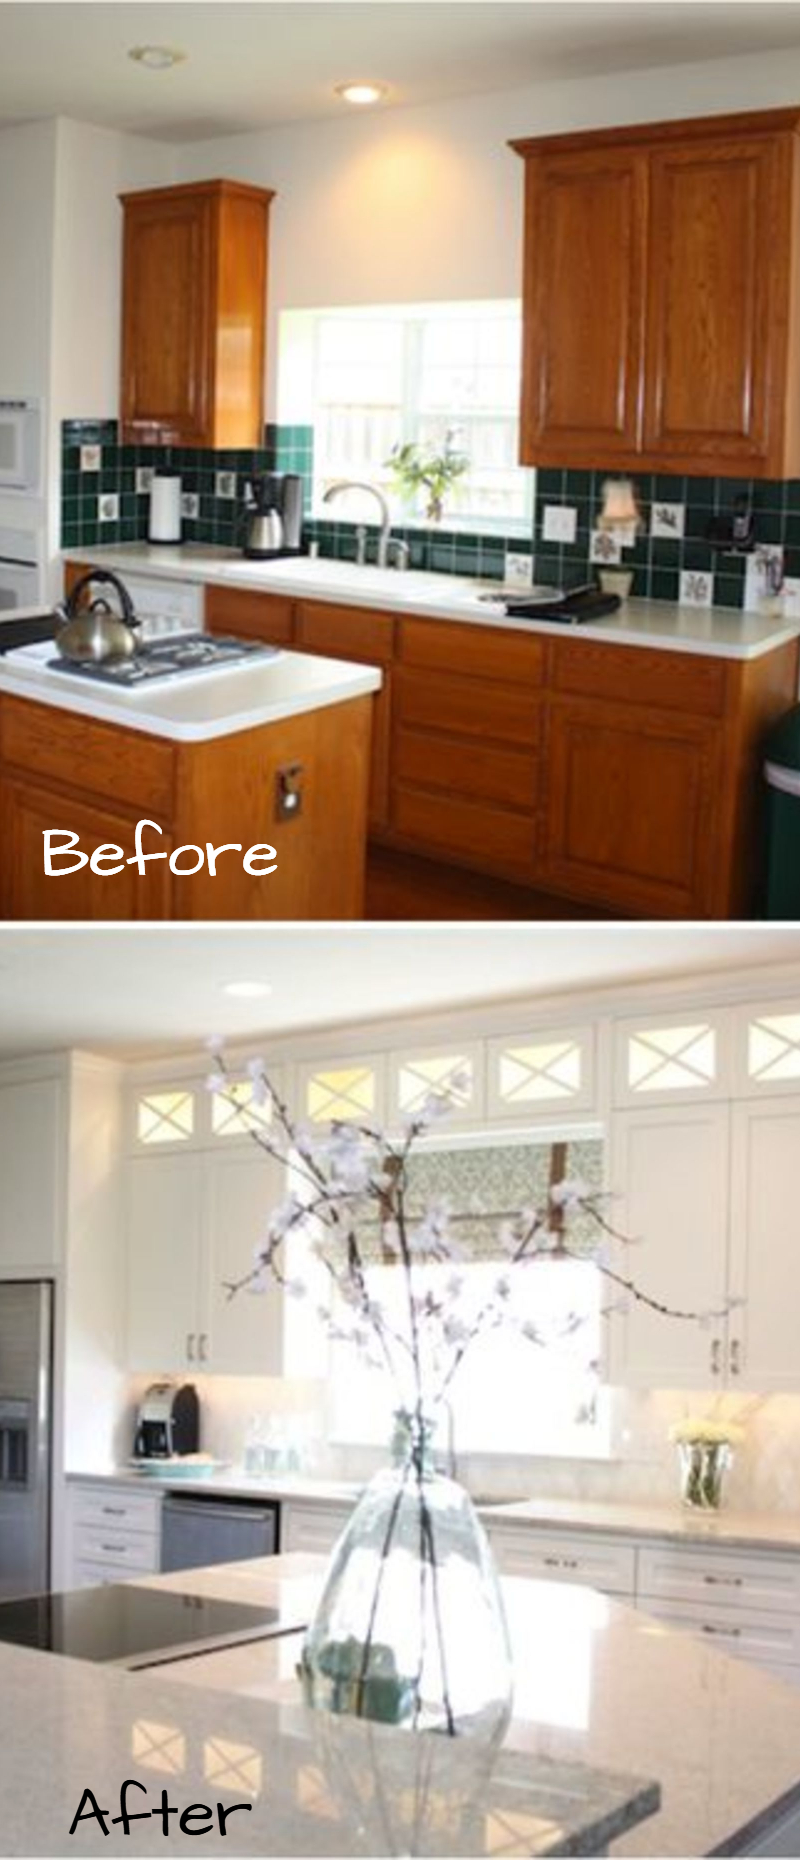 tiny kitchen remodel cabinets on a budget small remodels before and after pictures to drool over of makeovers kitchenideas farmhousedecor